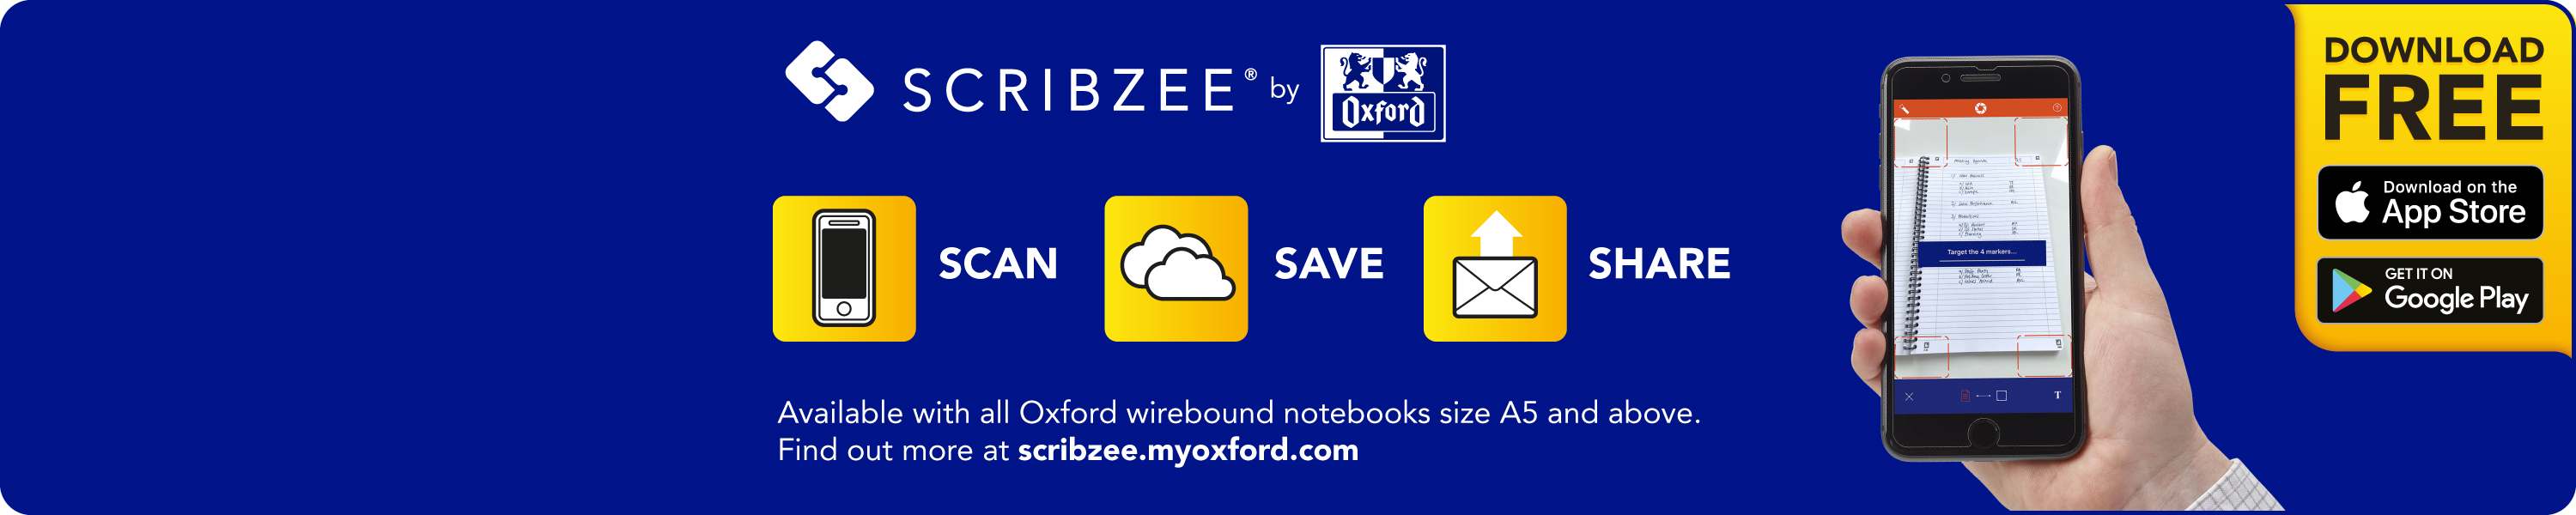 Amazon co uk: Oxford Campus Notebooks: Scribzee